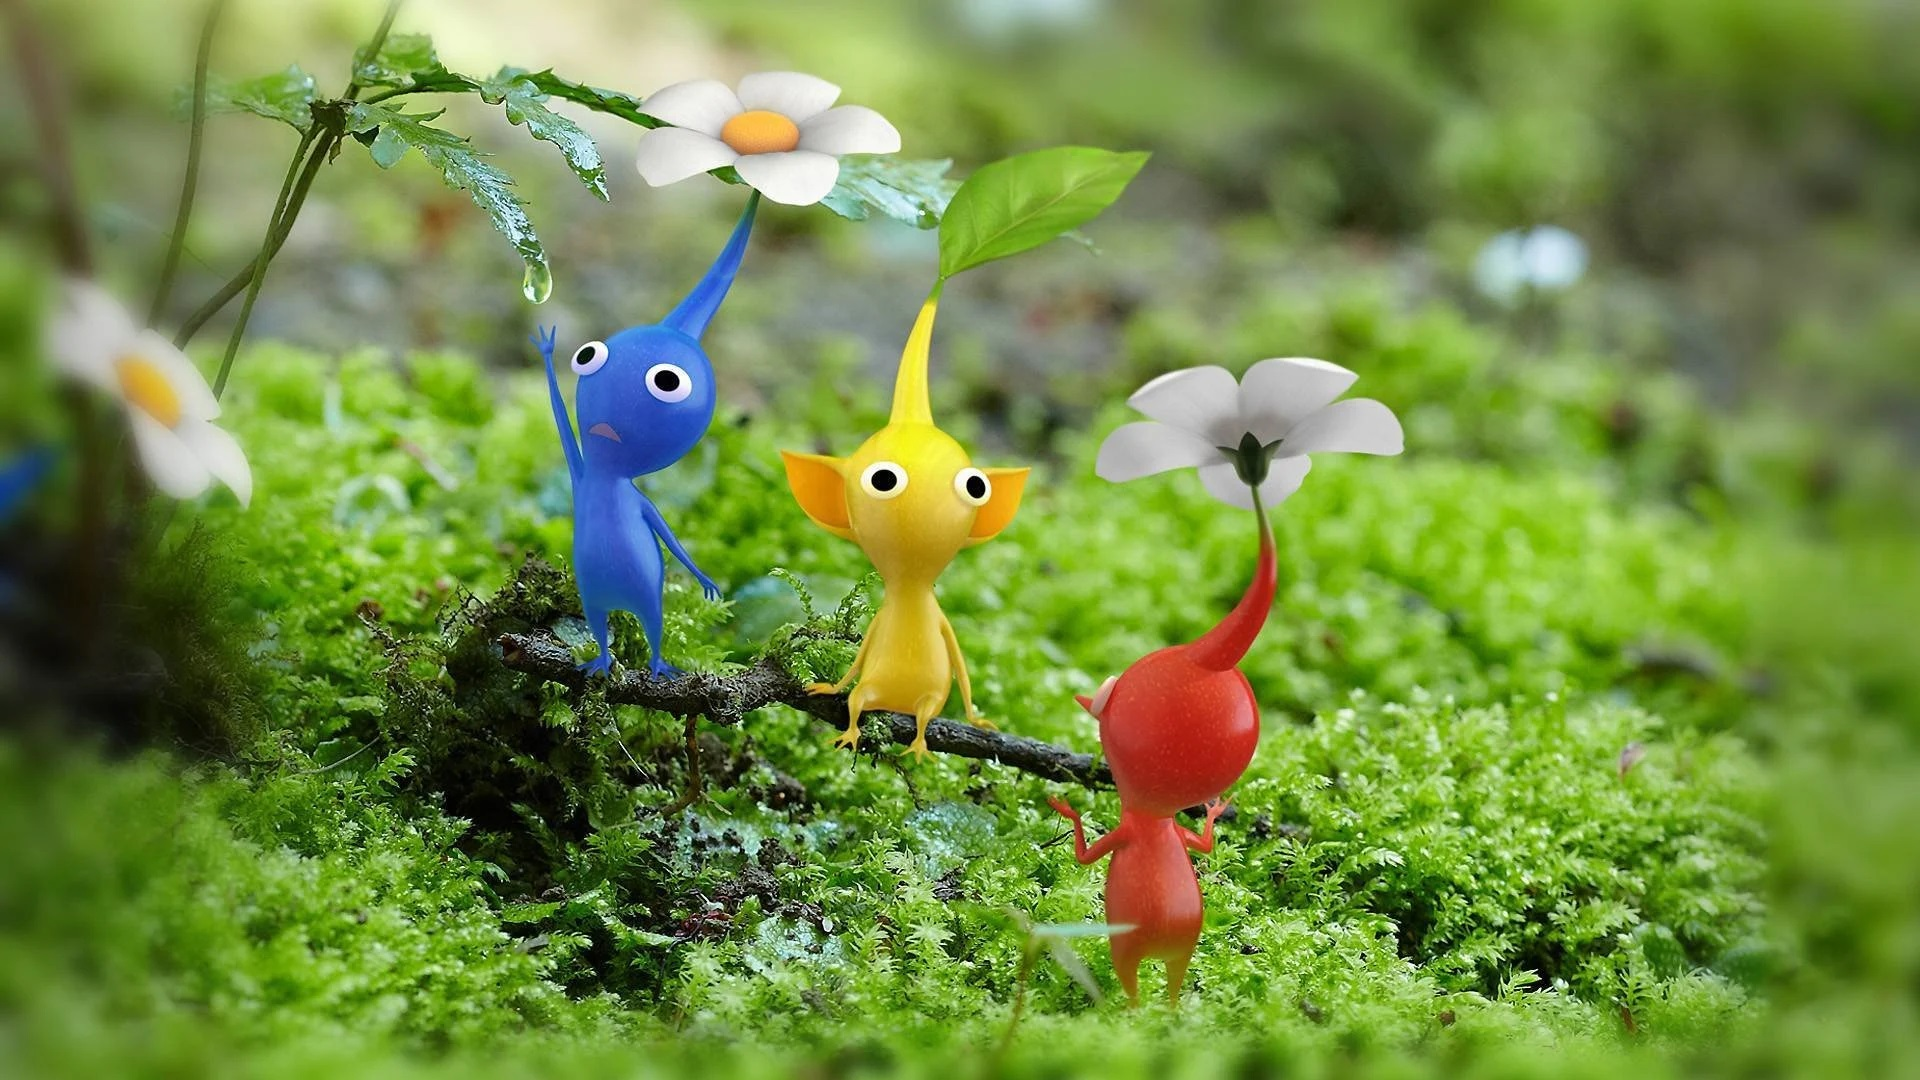 Pikmin 3 just got a patch to shore up some glitches